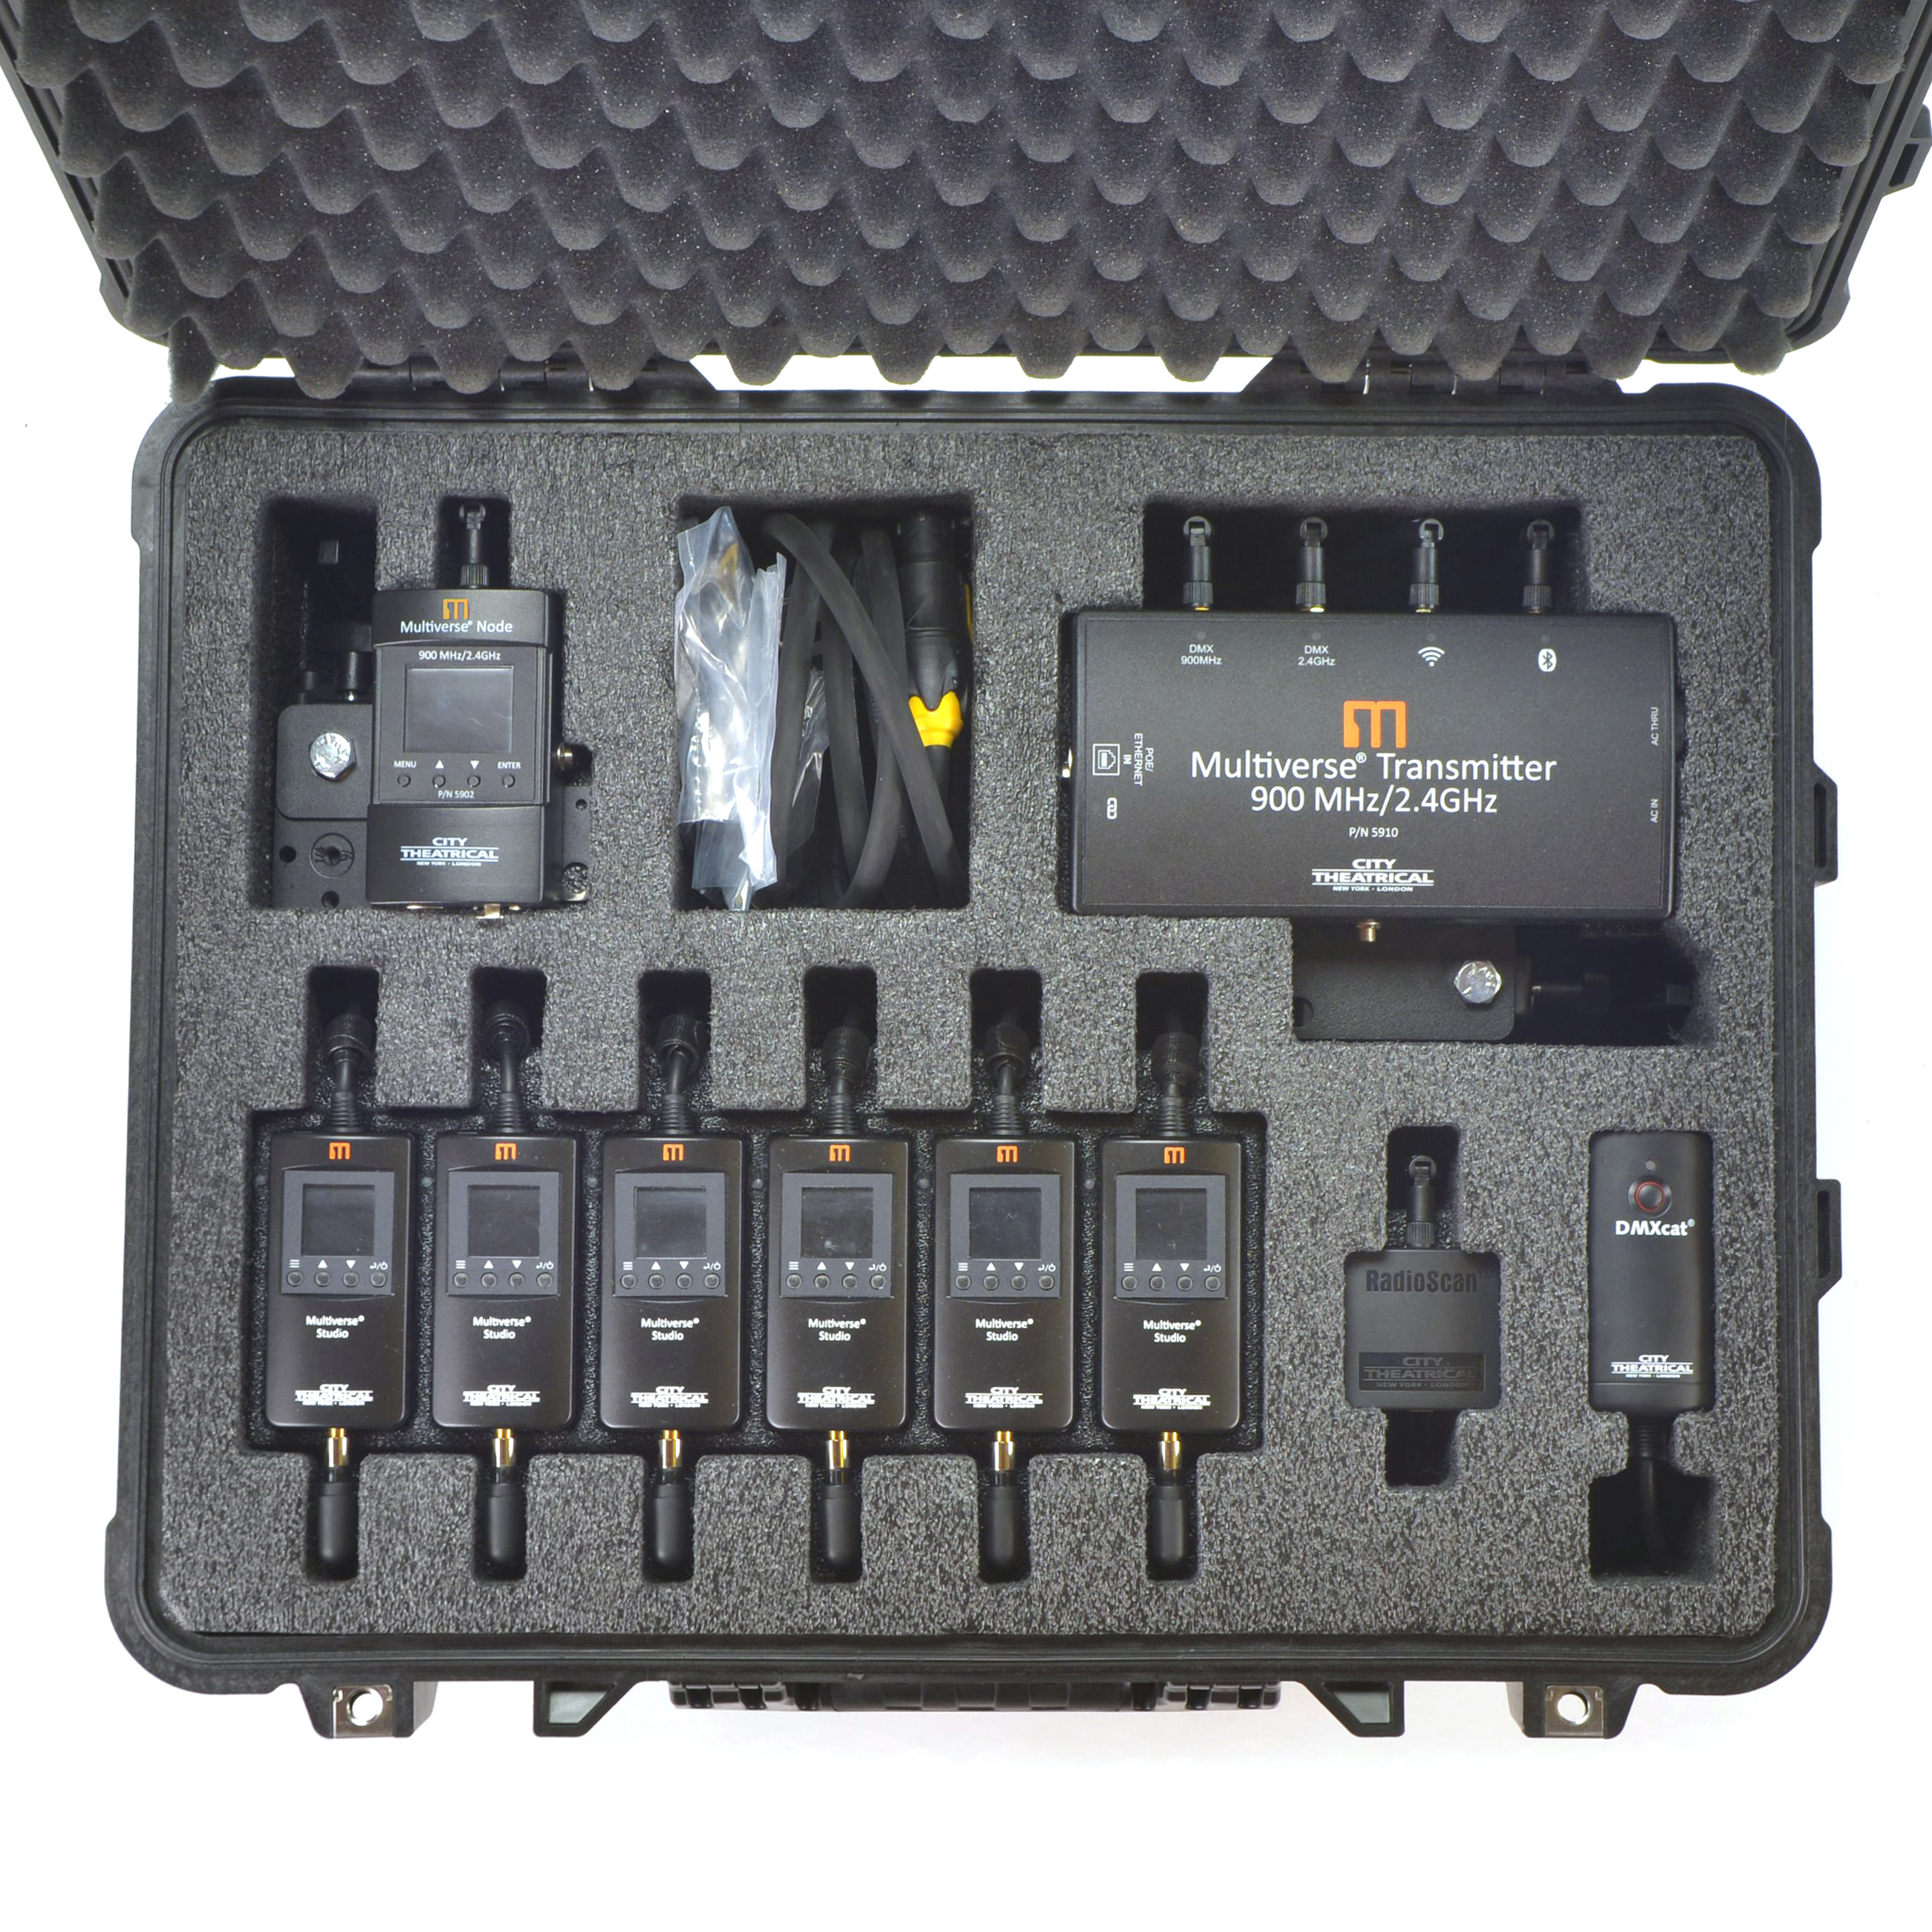 Multiverse Studio Kit loaded with 5910- square closeup